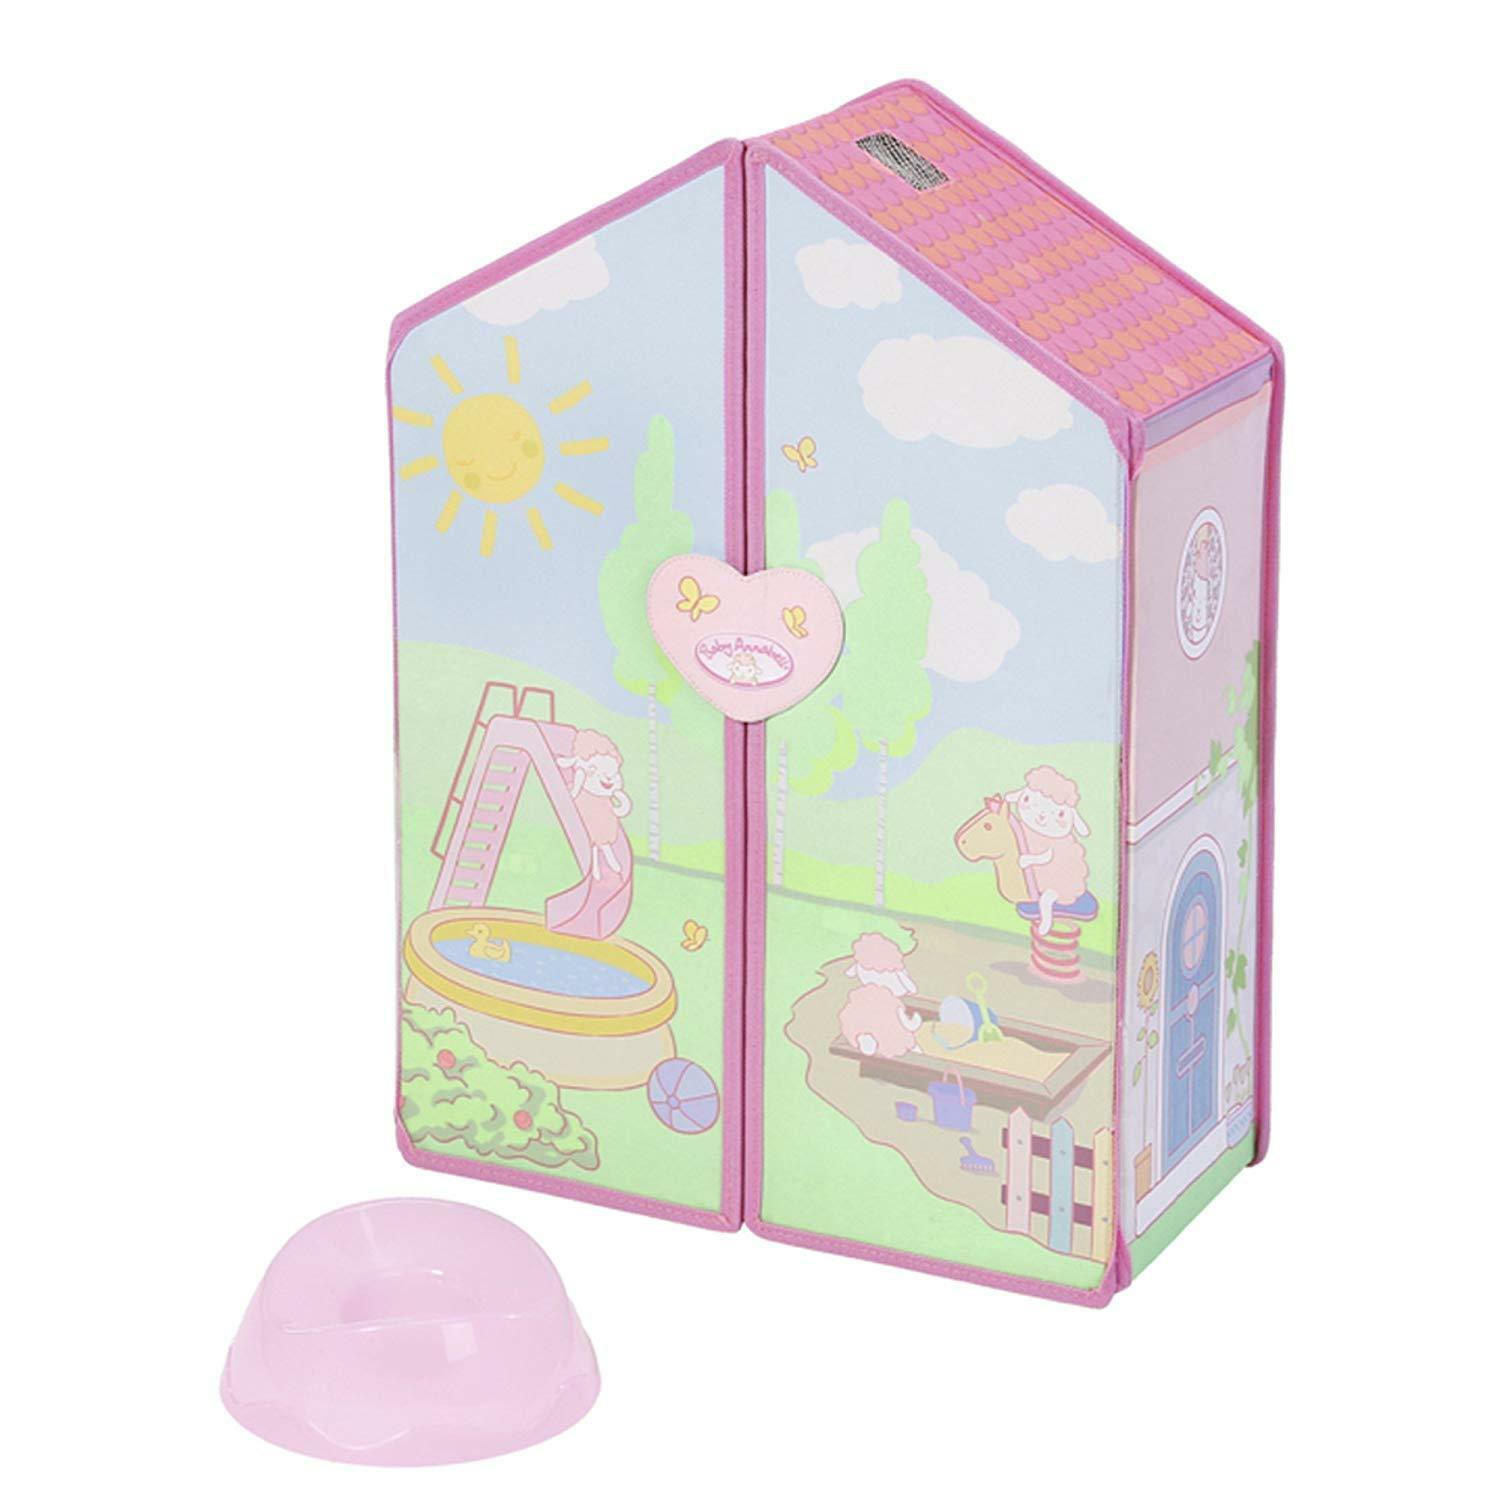 Zapf Creation Baby Annabell Deluxe Bathroom Doll Accessory Toy Playset